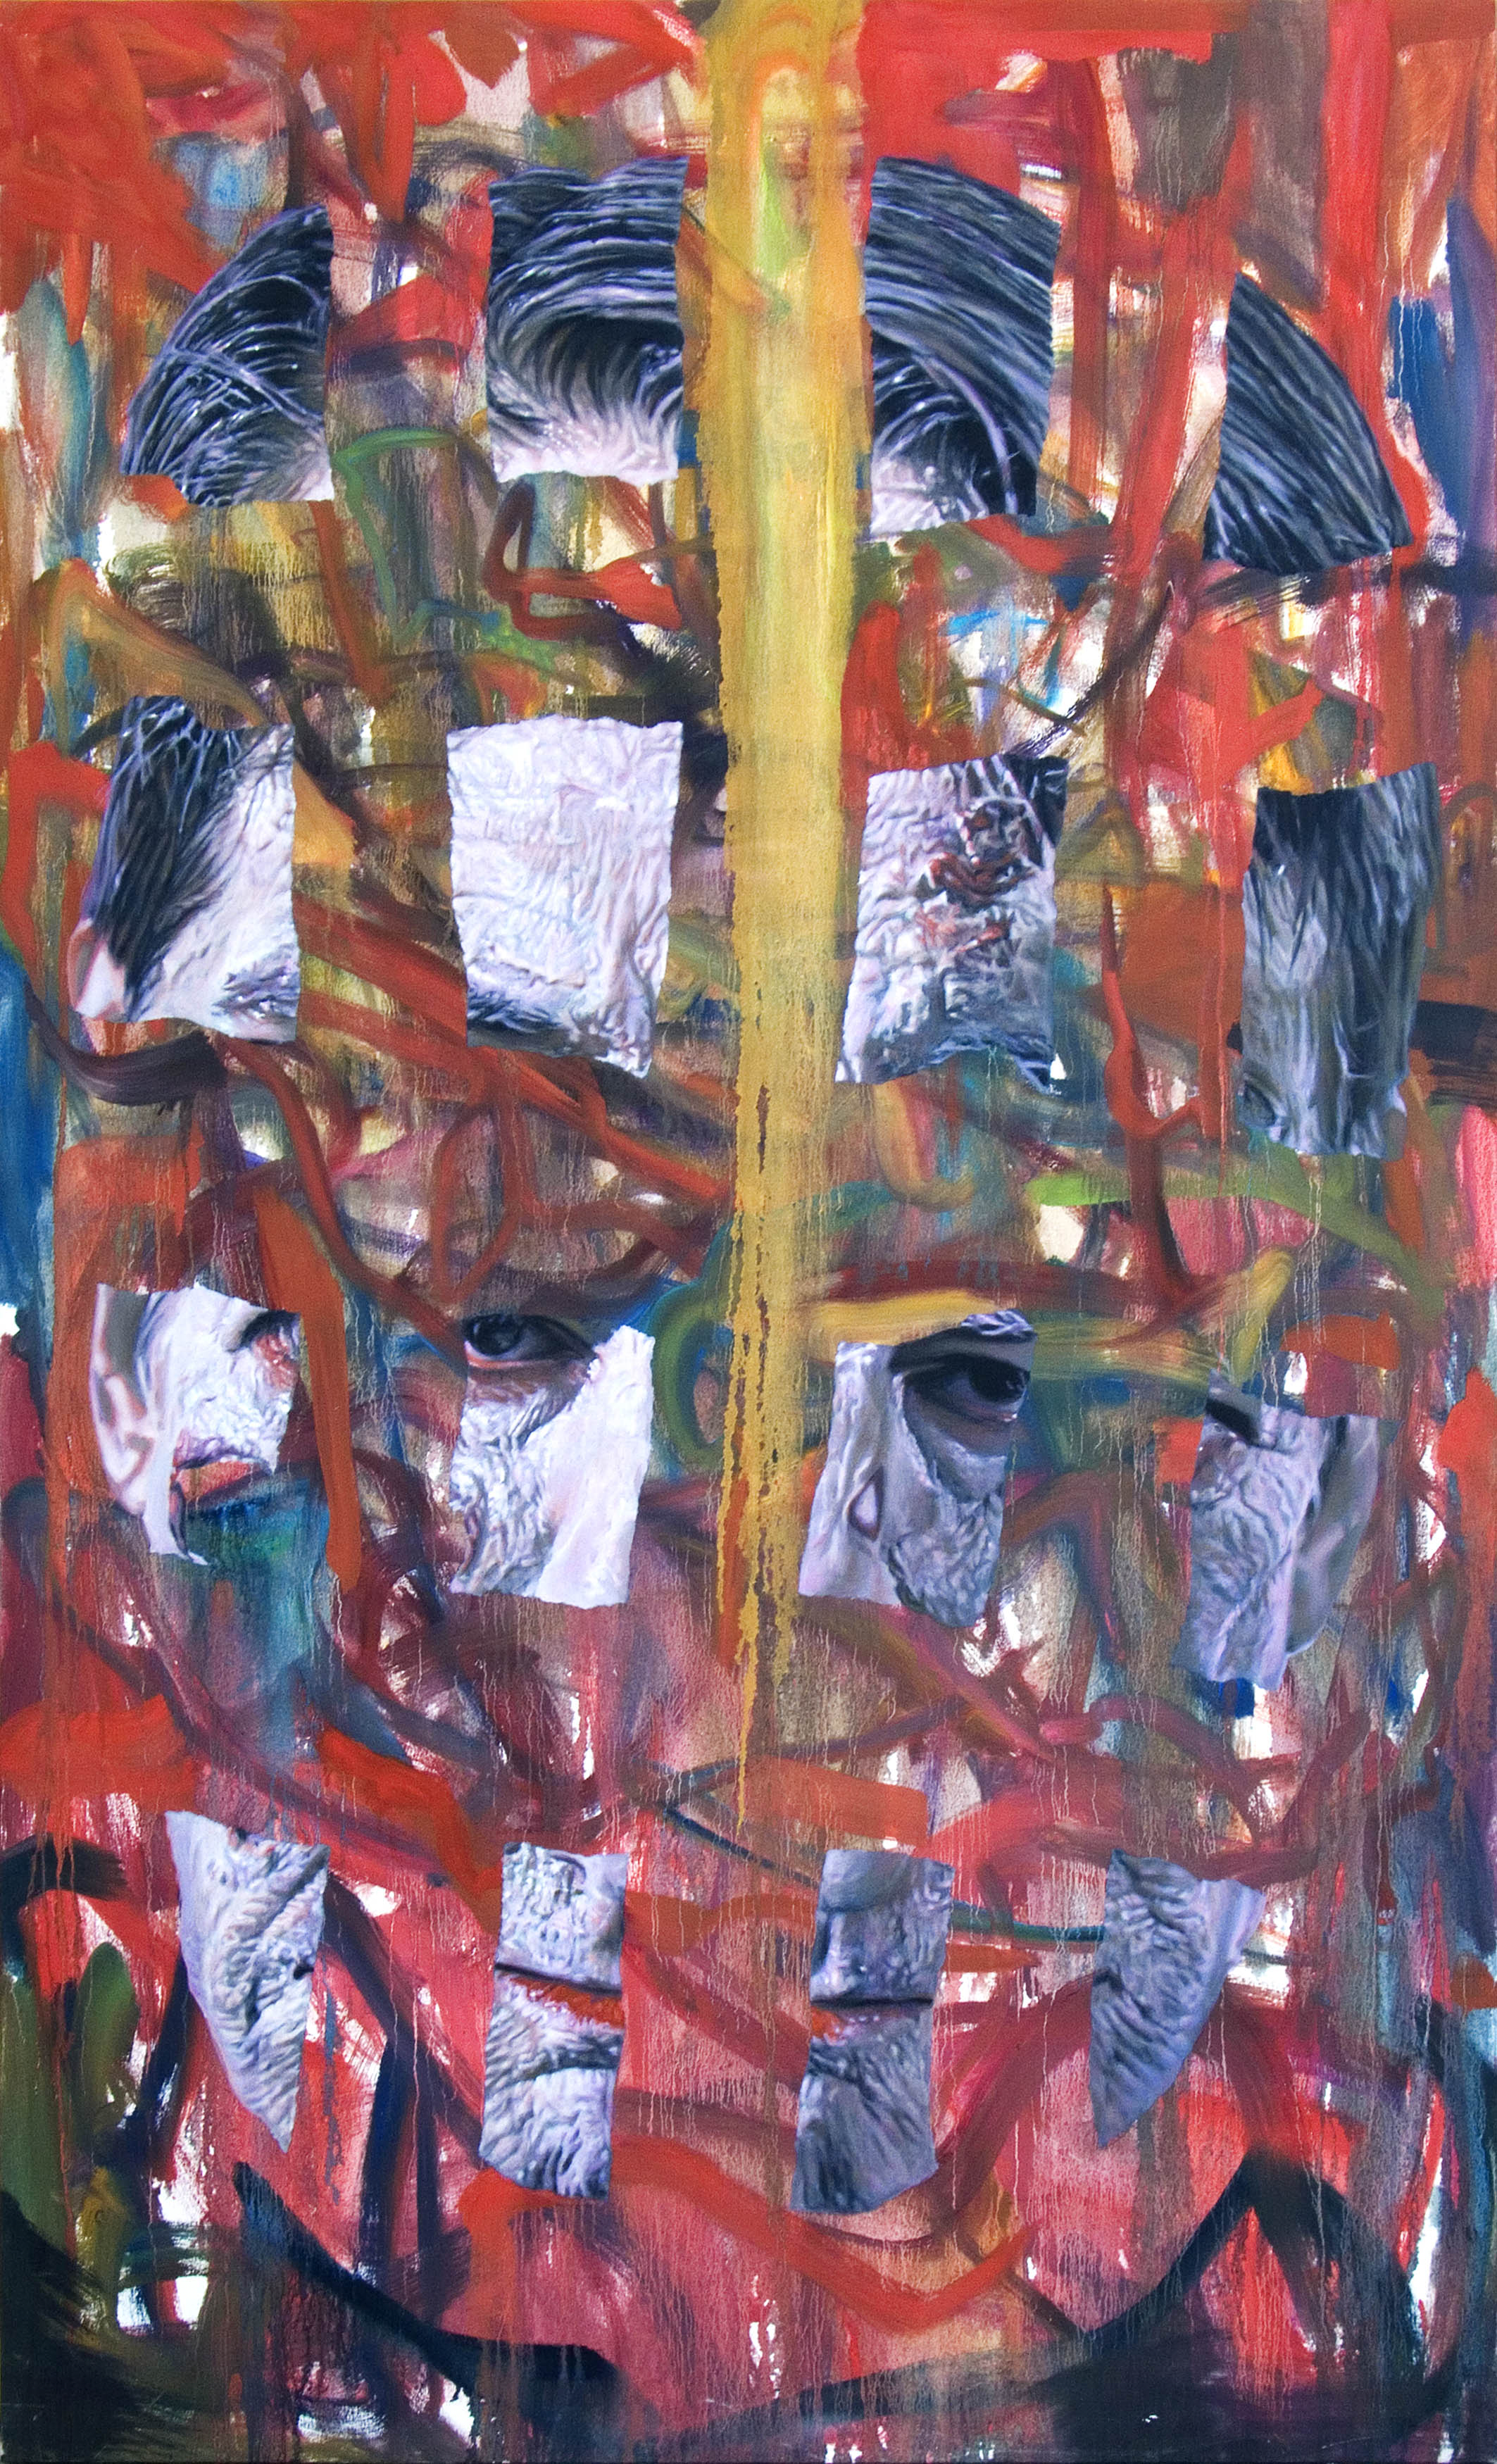 Zombie painting #1, 2007 oil on canvas 193 x 116,8 cm - 76 x 46 inches